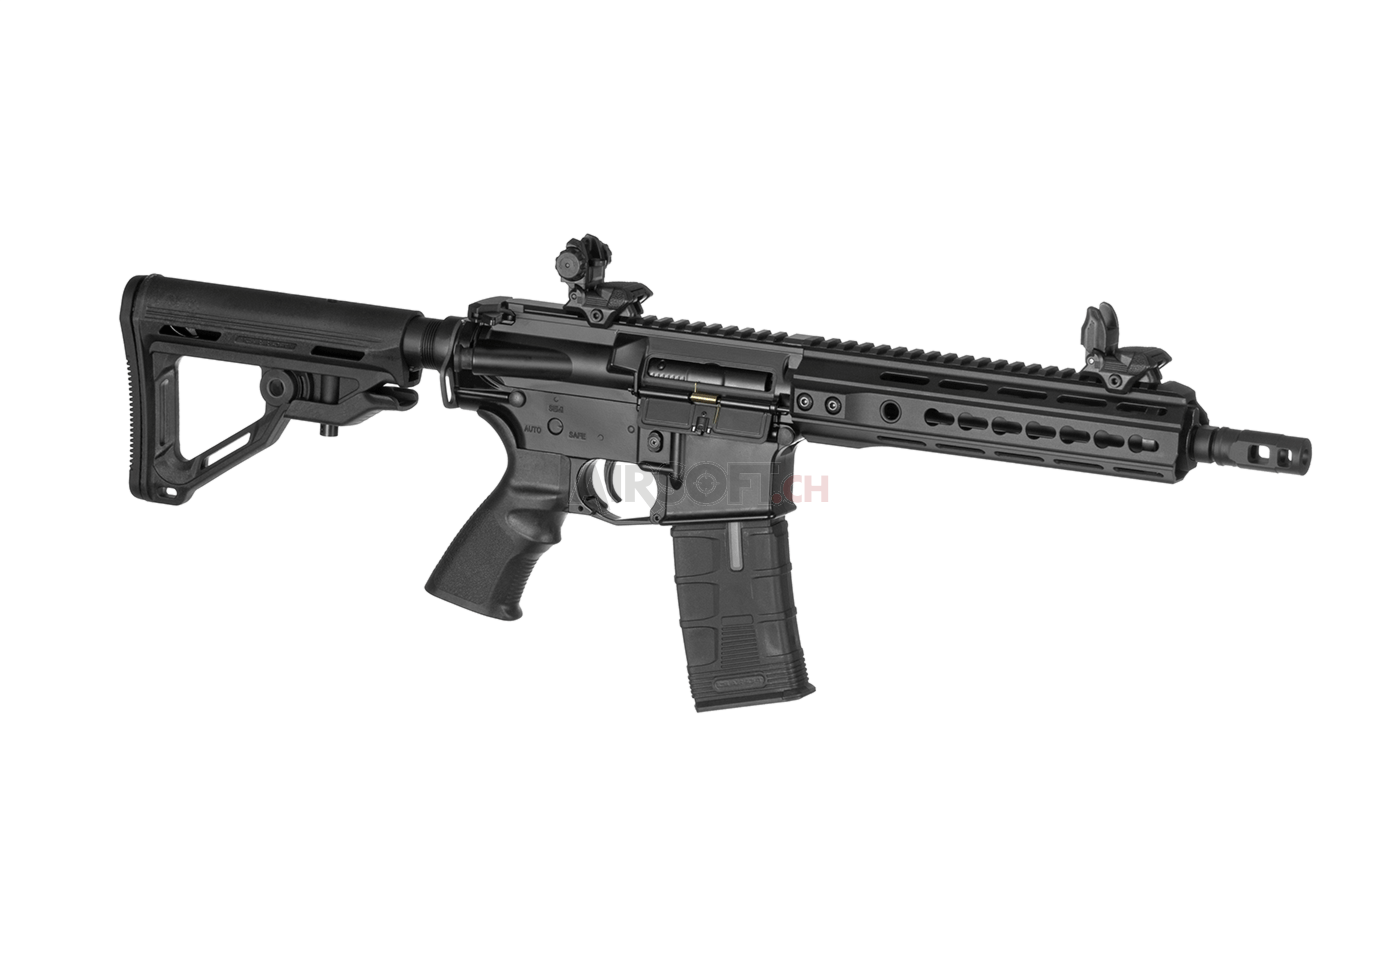 cxp uk1 r black ics aeg airsoft aeg rifles online shop. Black Bedroom Furniture Sets. Home Design Ideas